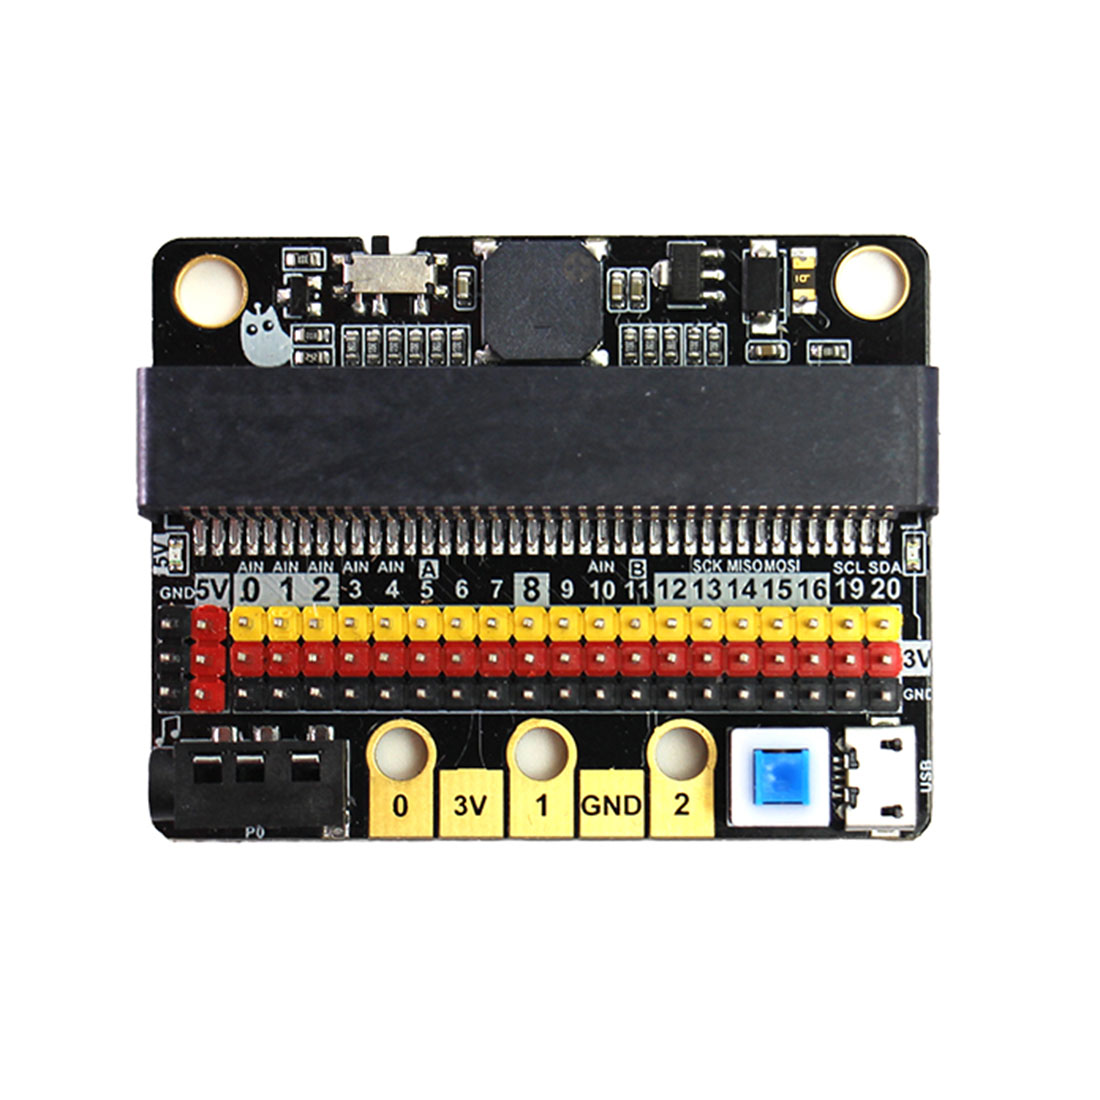 Microbit IOBIT V1.0 V2.0 Development Board Expansion Board STEM Educational Toy Accessories